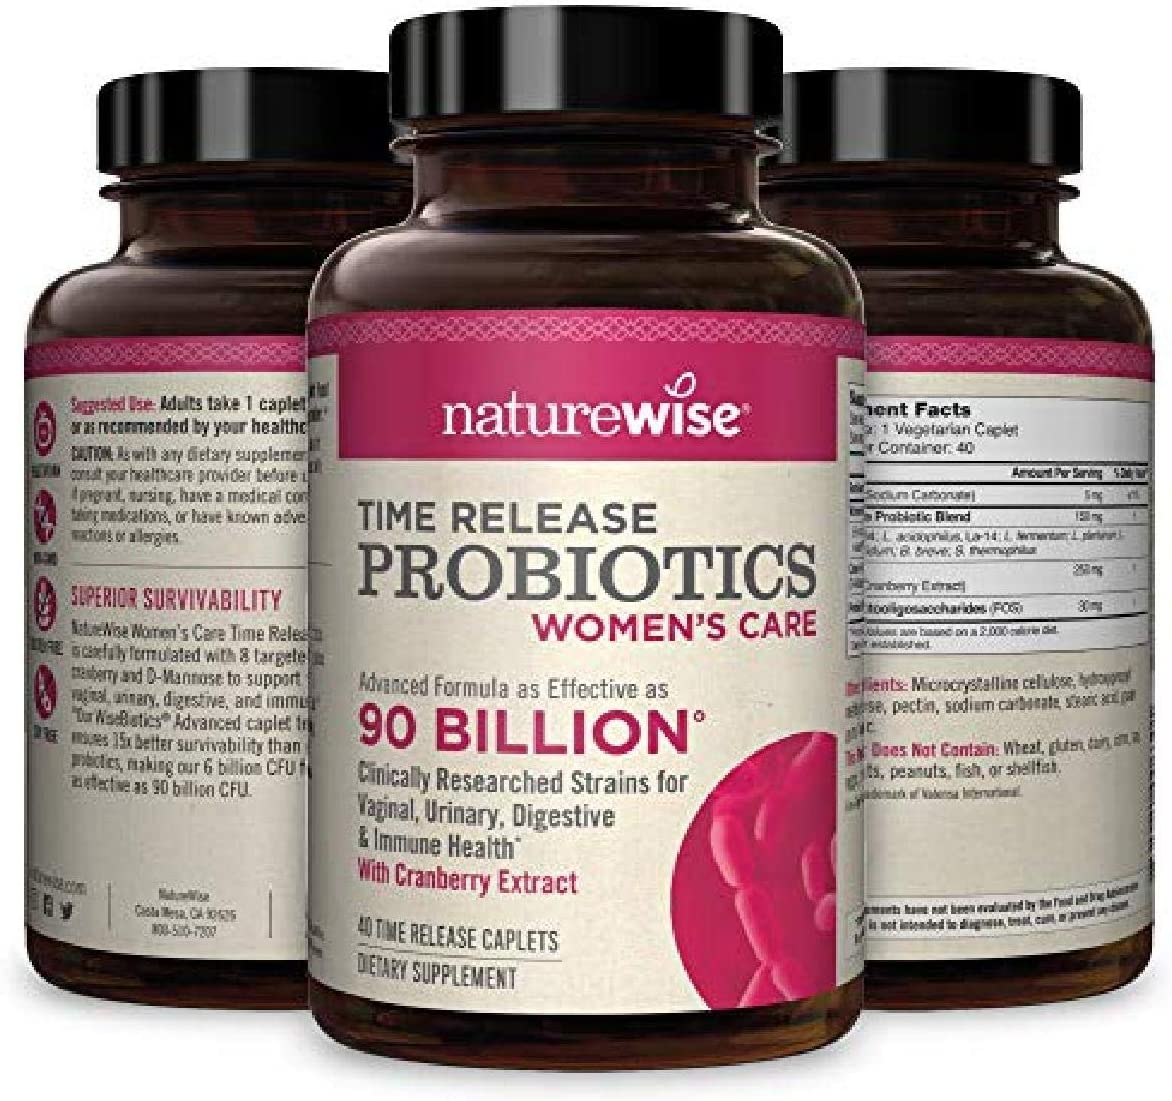 Amazon.com: NatureWise Probiotics for Women | Time-Release Probiotic  Supplement Comparable to 90 Billion CFU | Cranberry & D Mannose for  Vaginal, Urinary, Digestive & Immune Health (Packaging May Vary) [1 Month]:  Health